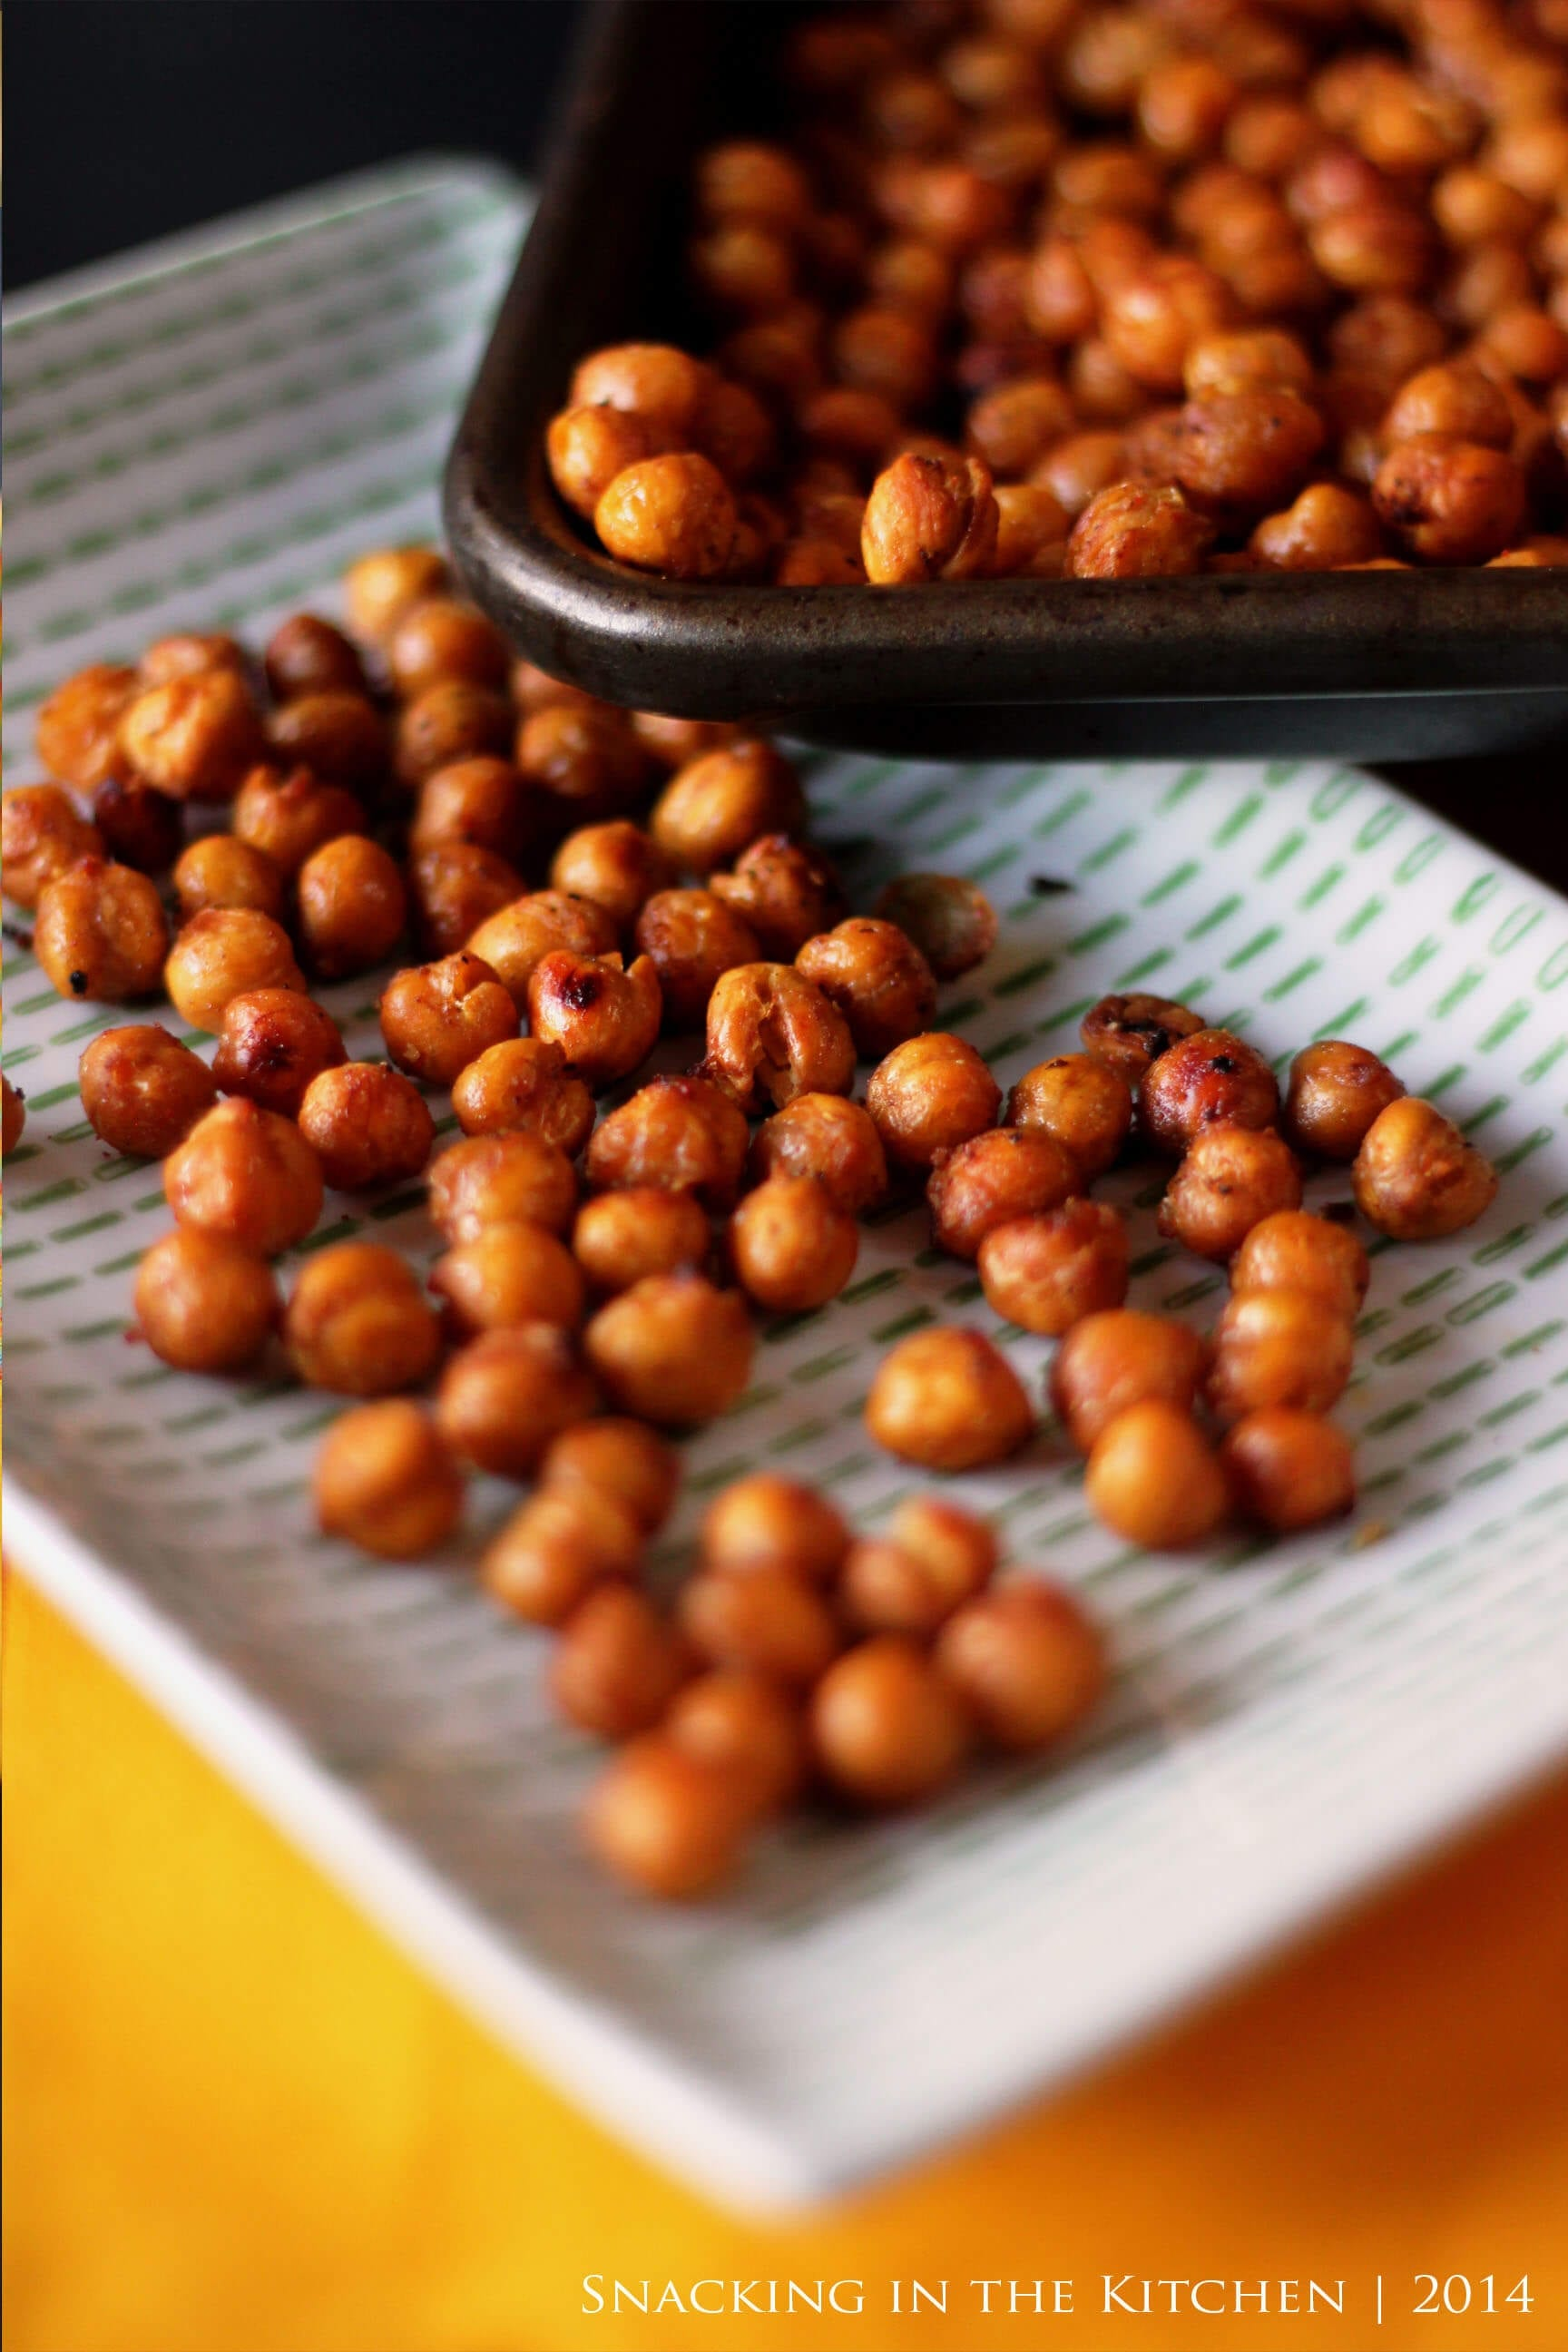 Spicy-oven-roasted-chickpeas | SnackNation